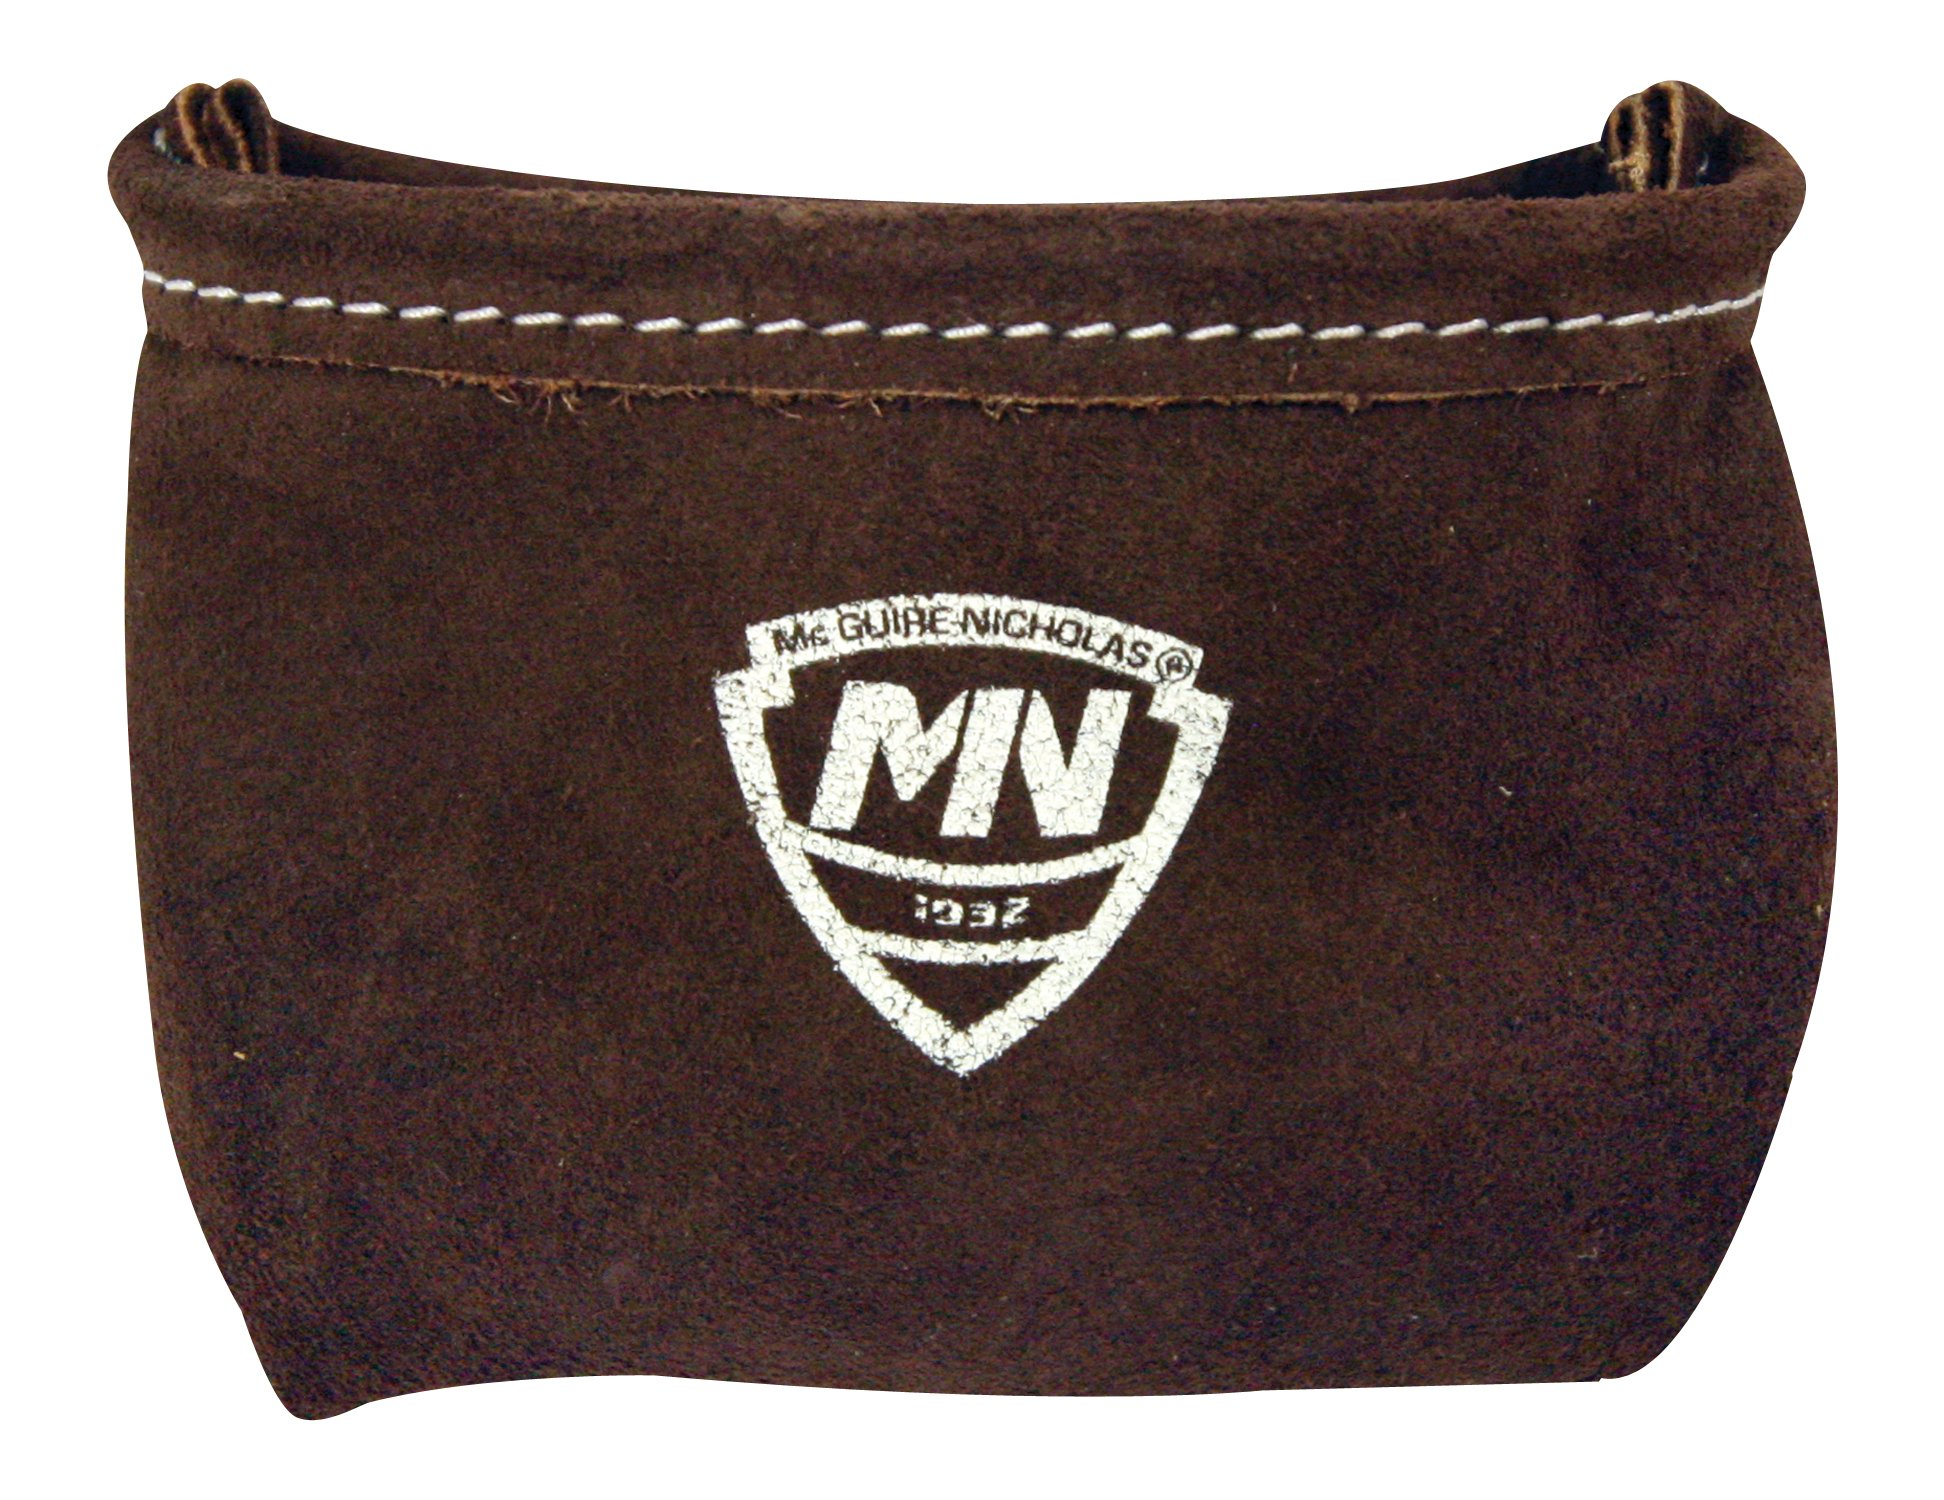 McGuire Nicholas 039S Single Pocket Pouch with Belt Clip in Tan Suede Leather